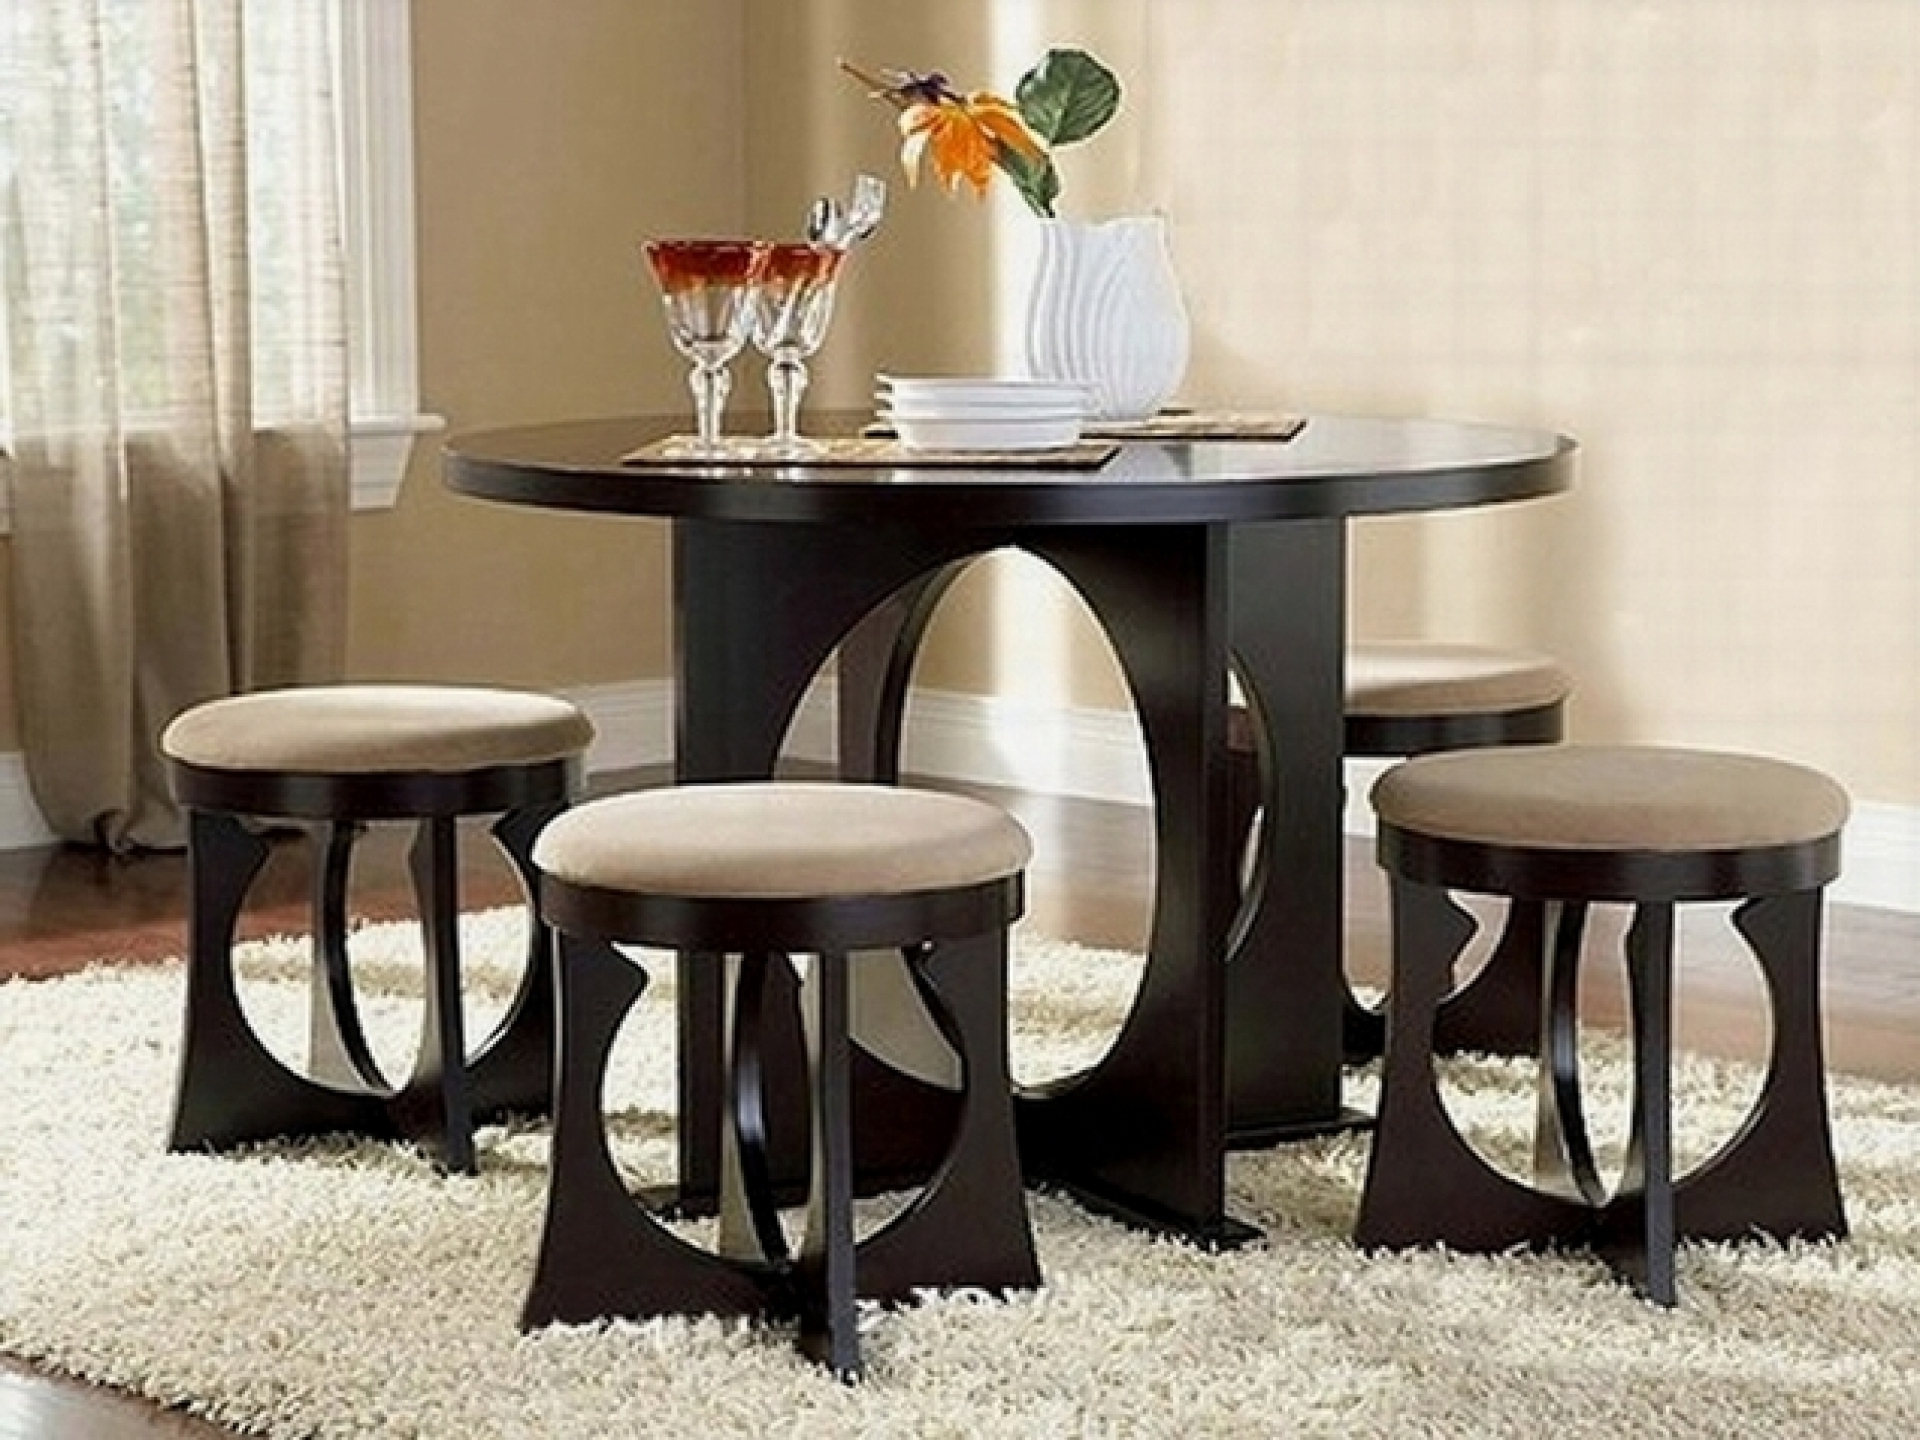 Widely Used Dining Room Dining Sets For Small Rooms Compact Dining Table Chairs In Small Dining Tables And Chairs (View 25 of 25)